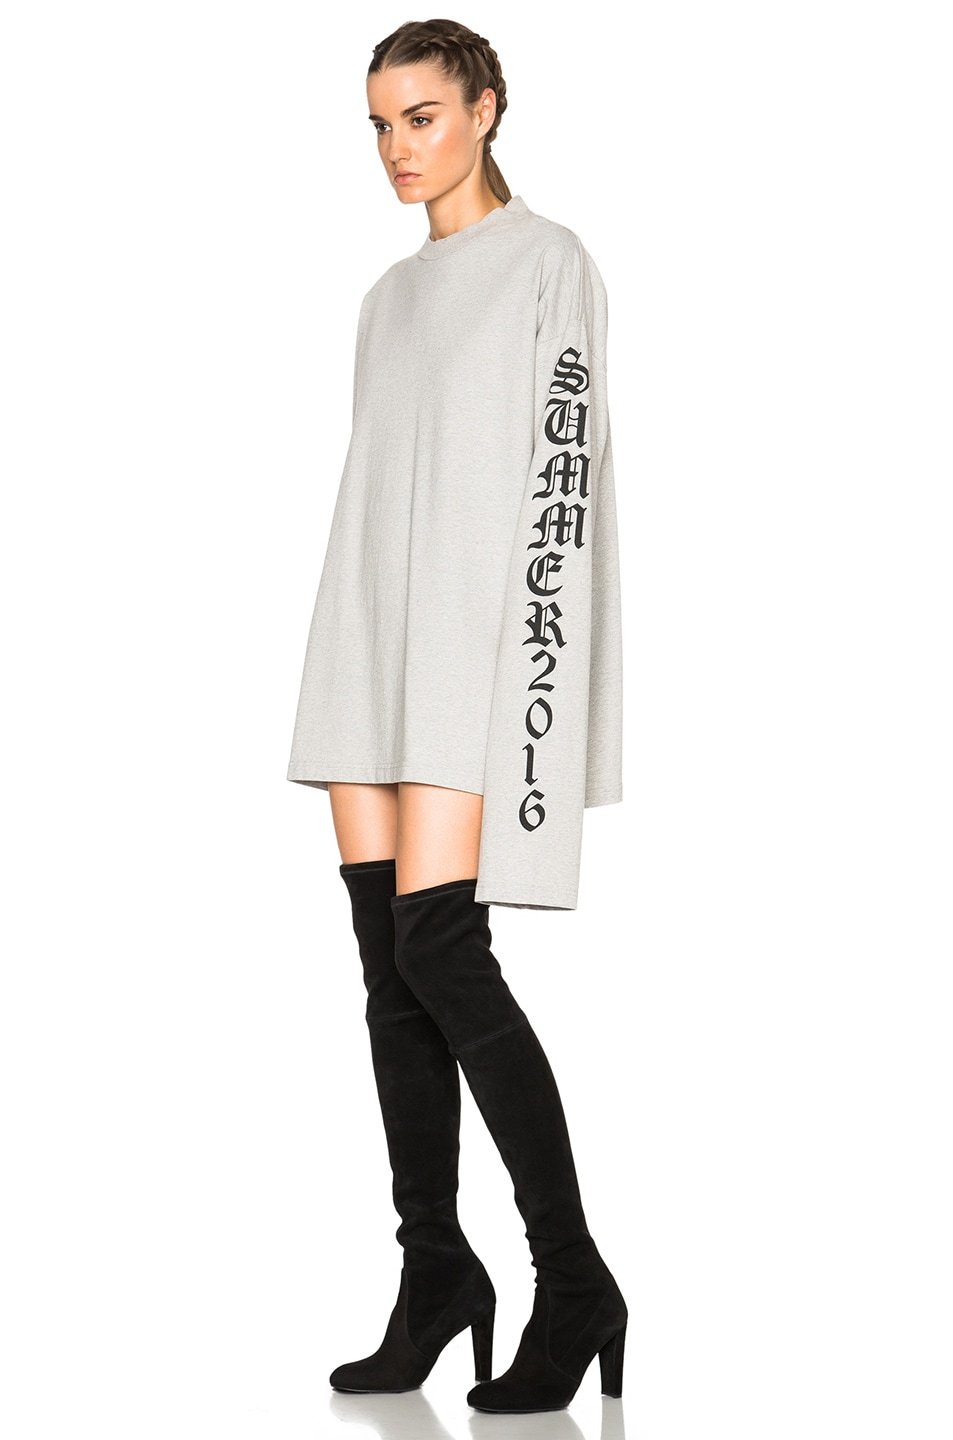 Vetements Oversized T Shirt In Grey Fwrd Image 2 Of